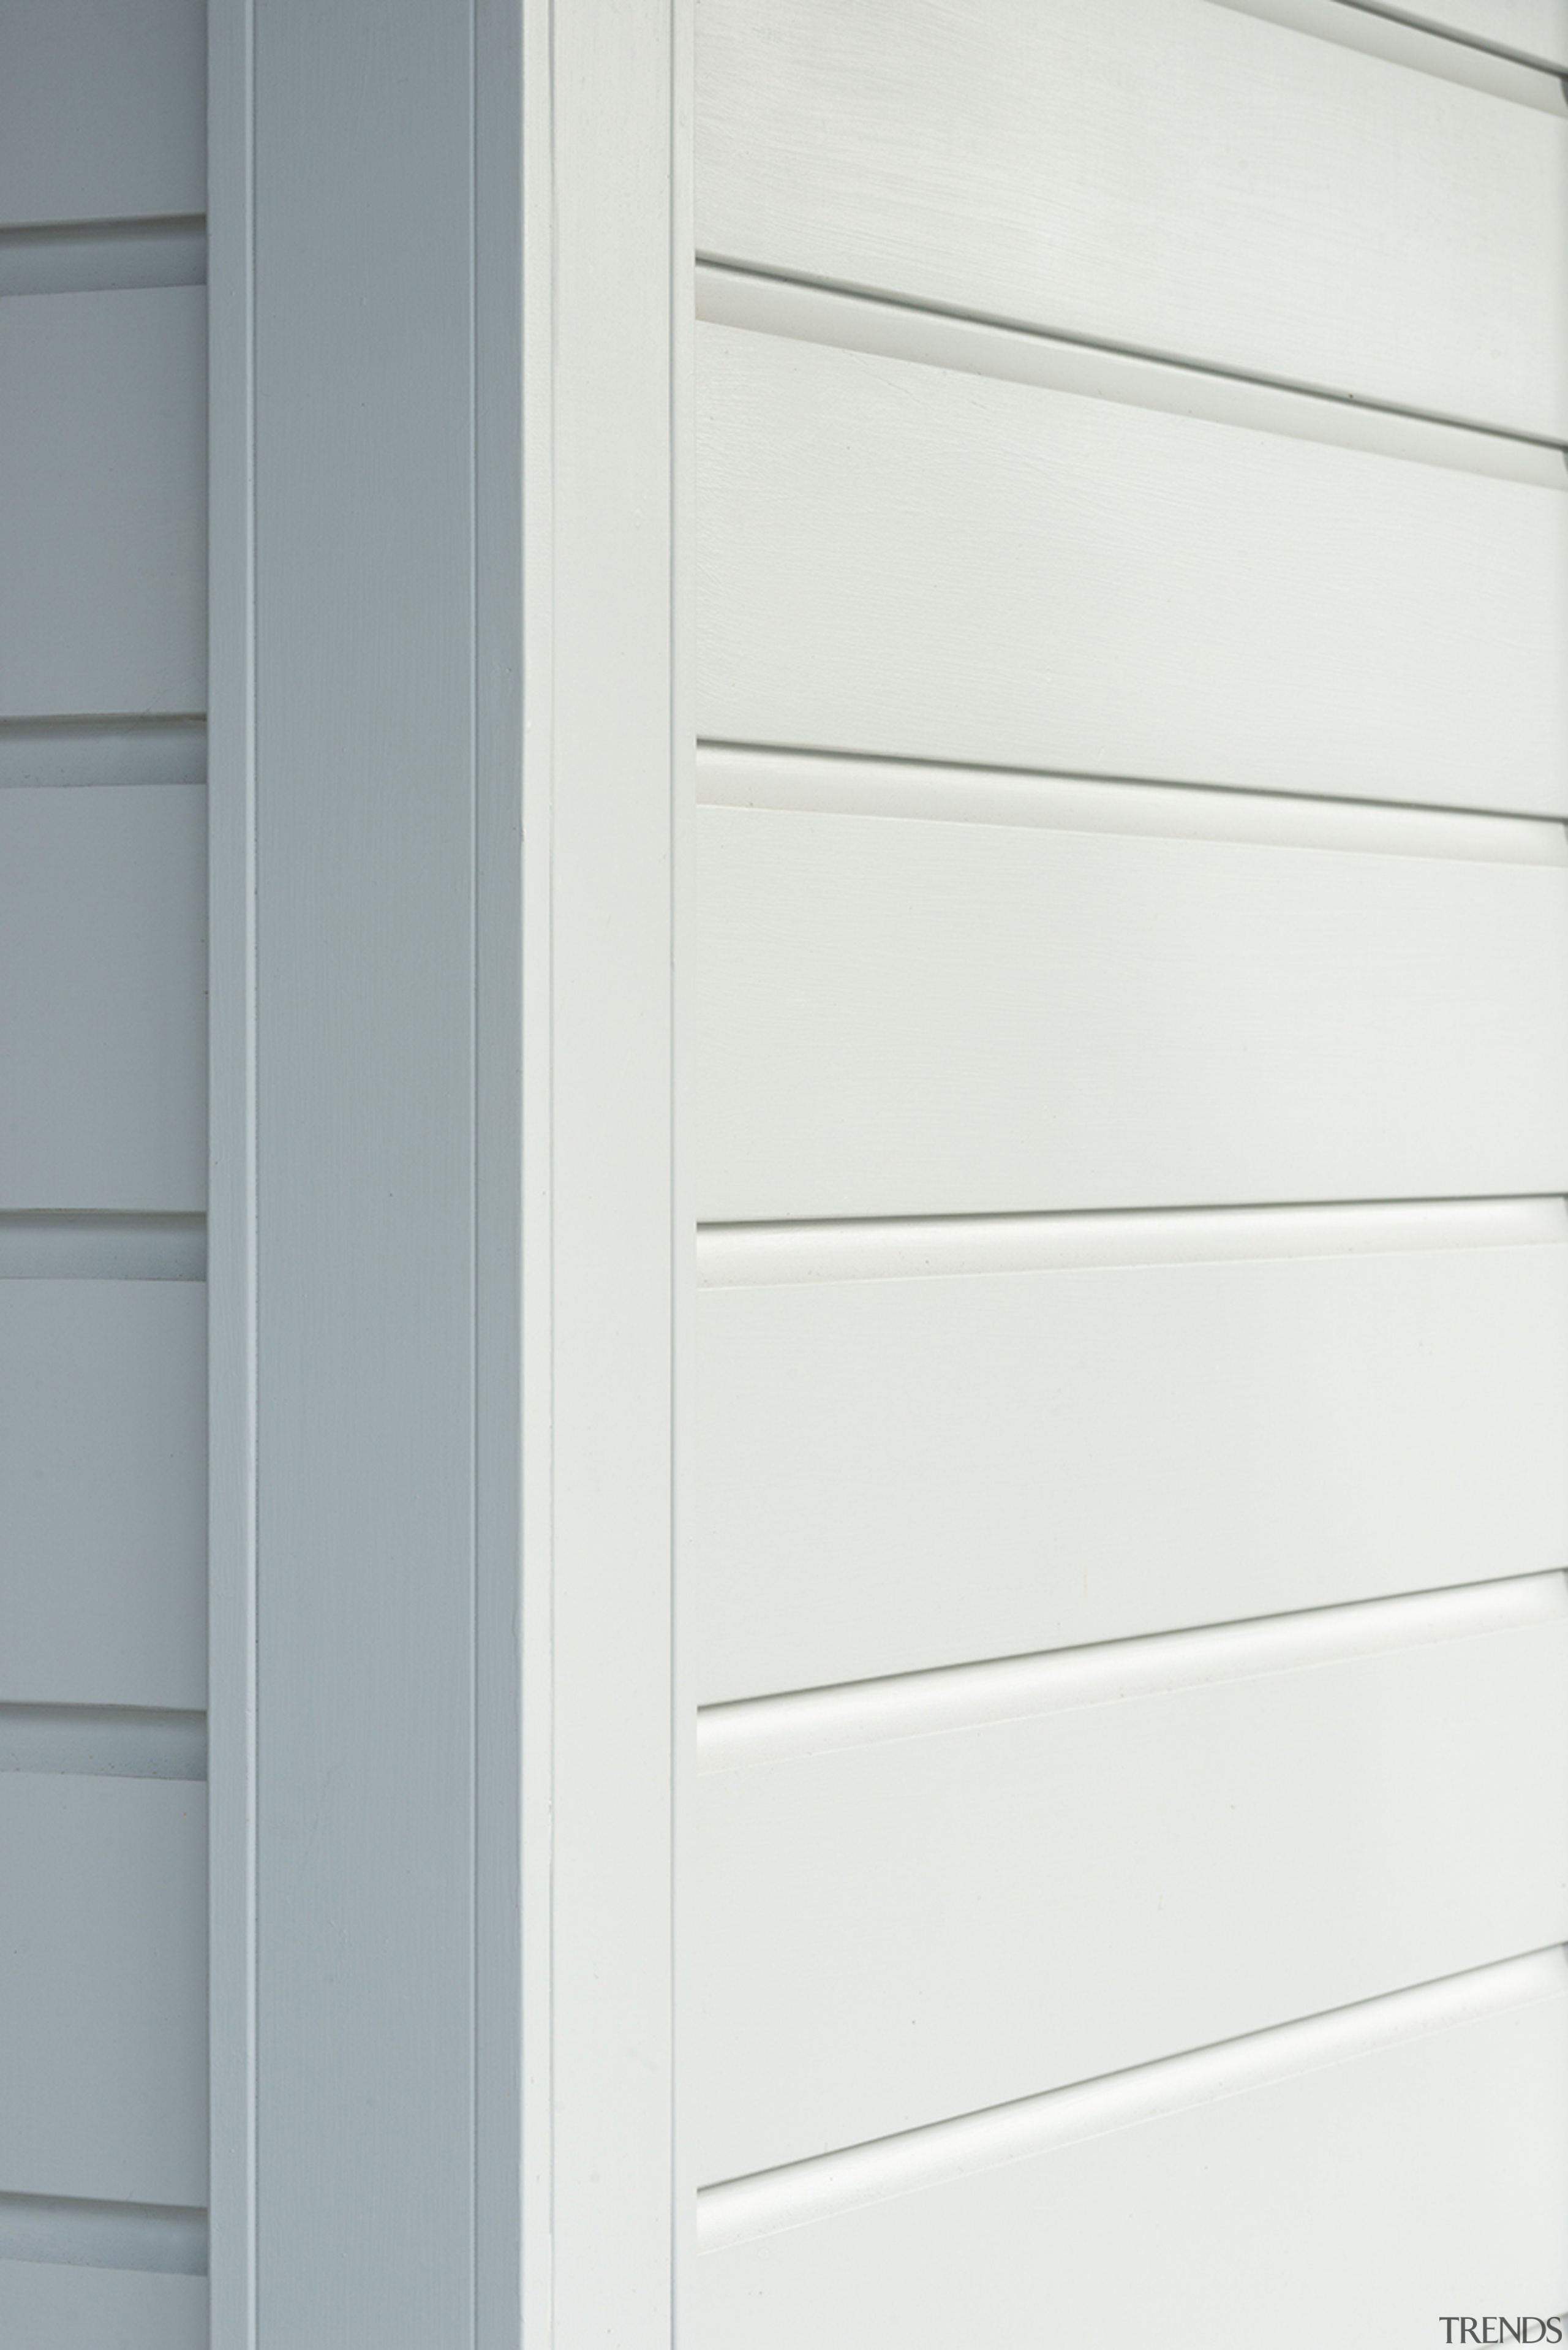 Classic Villa External Box Corner From The Envira chest of drawers, door, drawer, wood, wood stain, white, gray